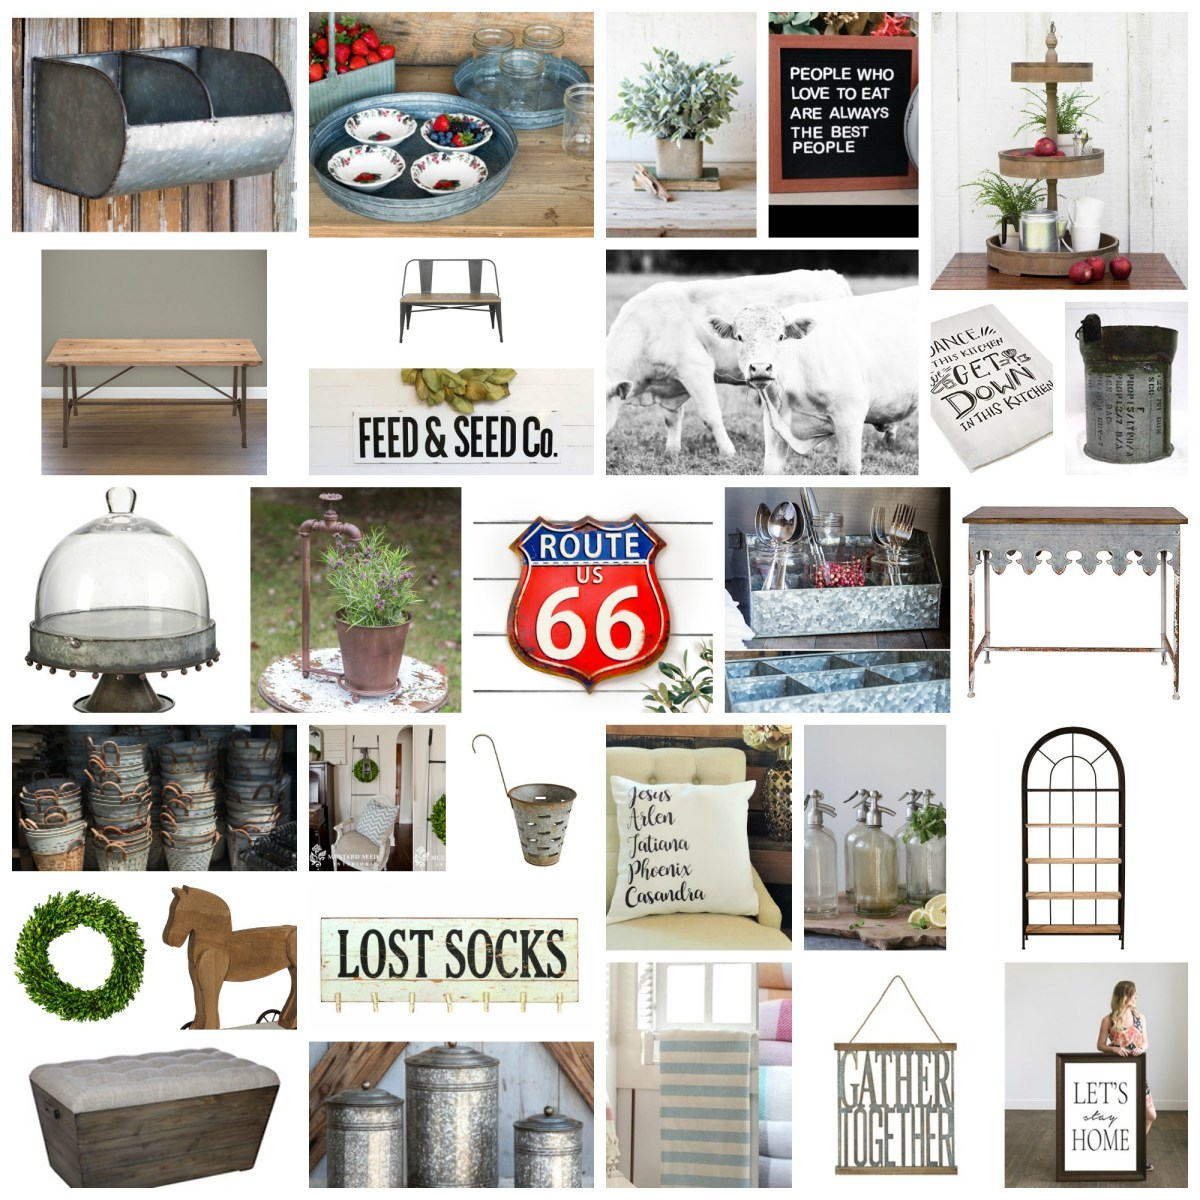 Home Decor Daily Deals: Sunday, March 26, 2017